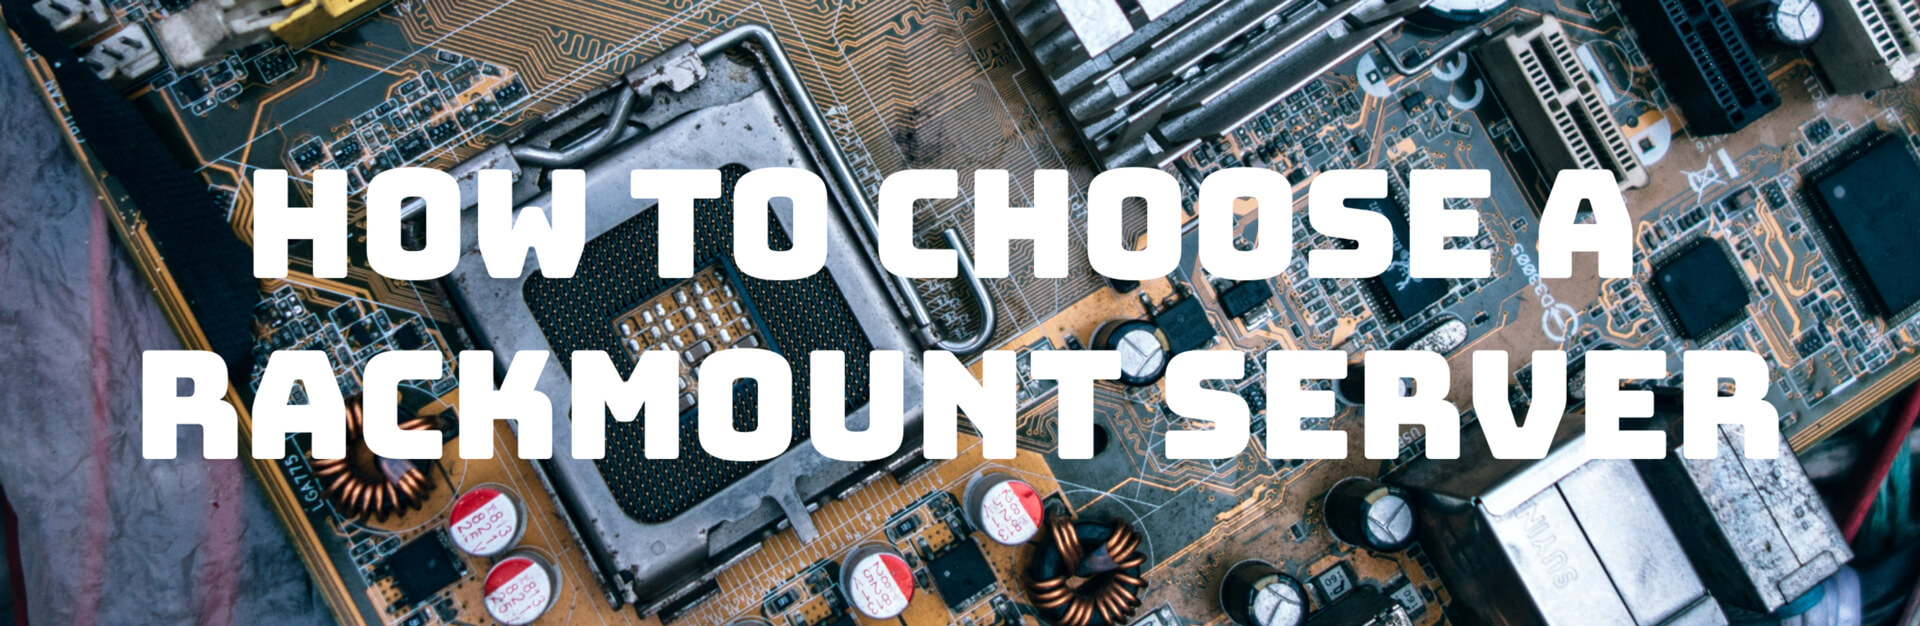 How to Choos The Right Rackmount Server